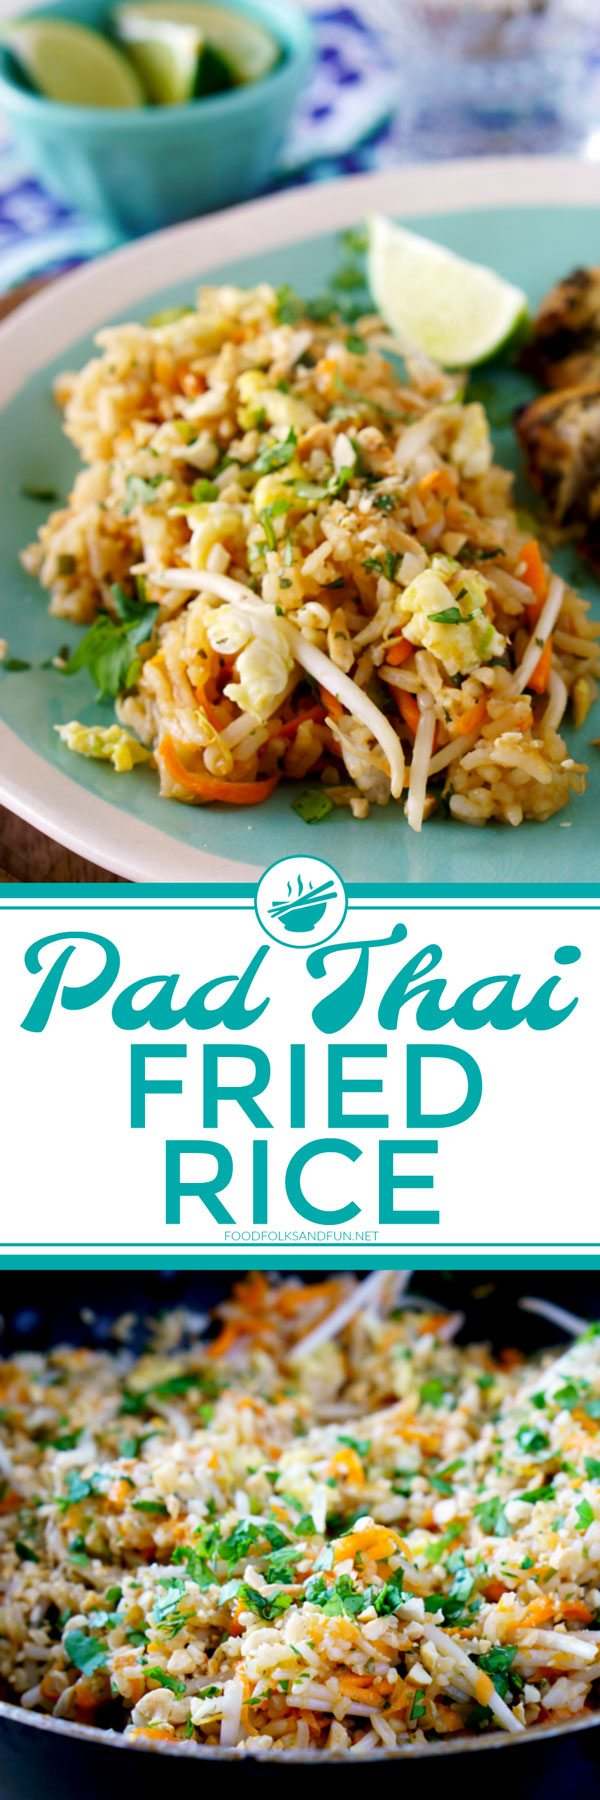 Pad Thai Fried Rice Recipe